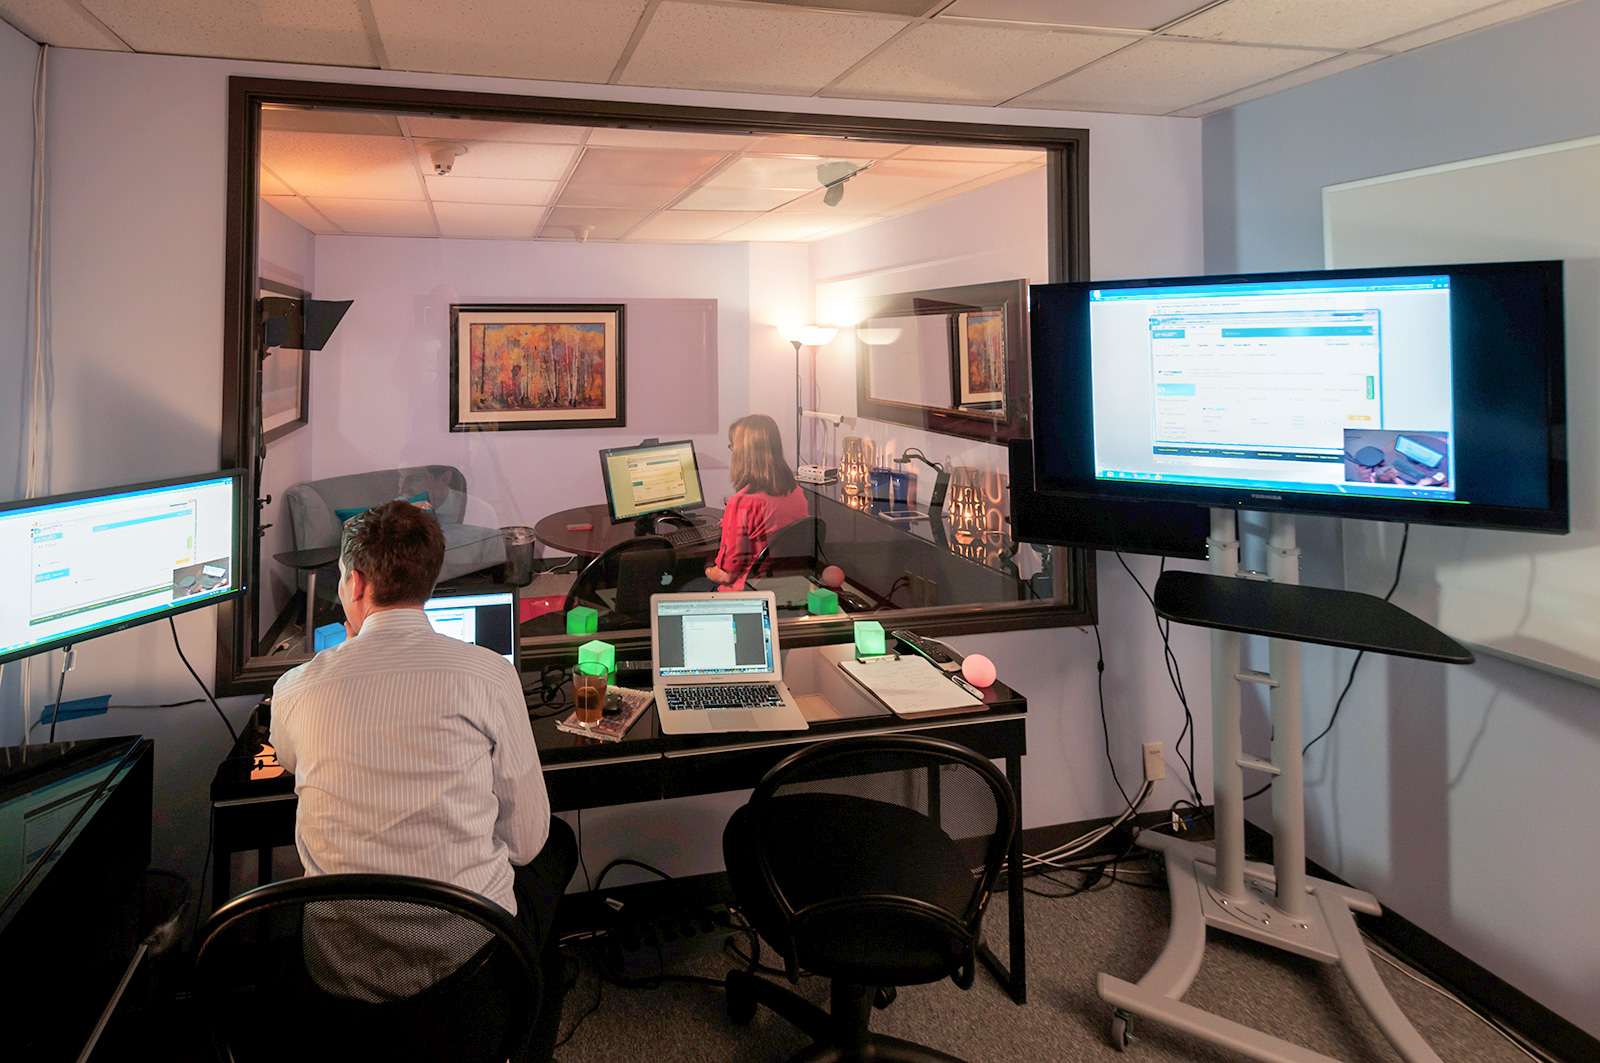 A setup for onsite usability testing inside a testing lab.